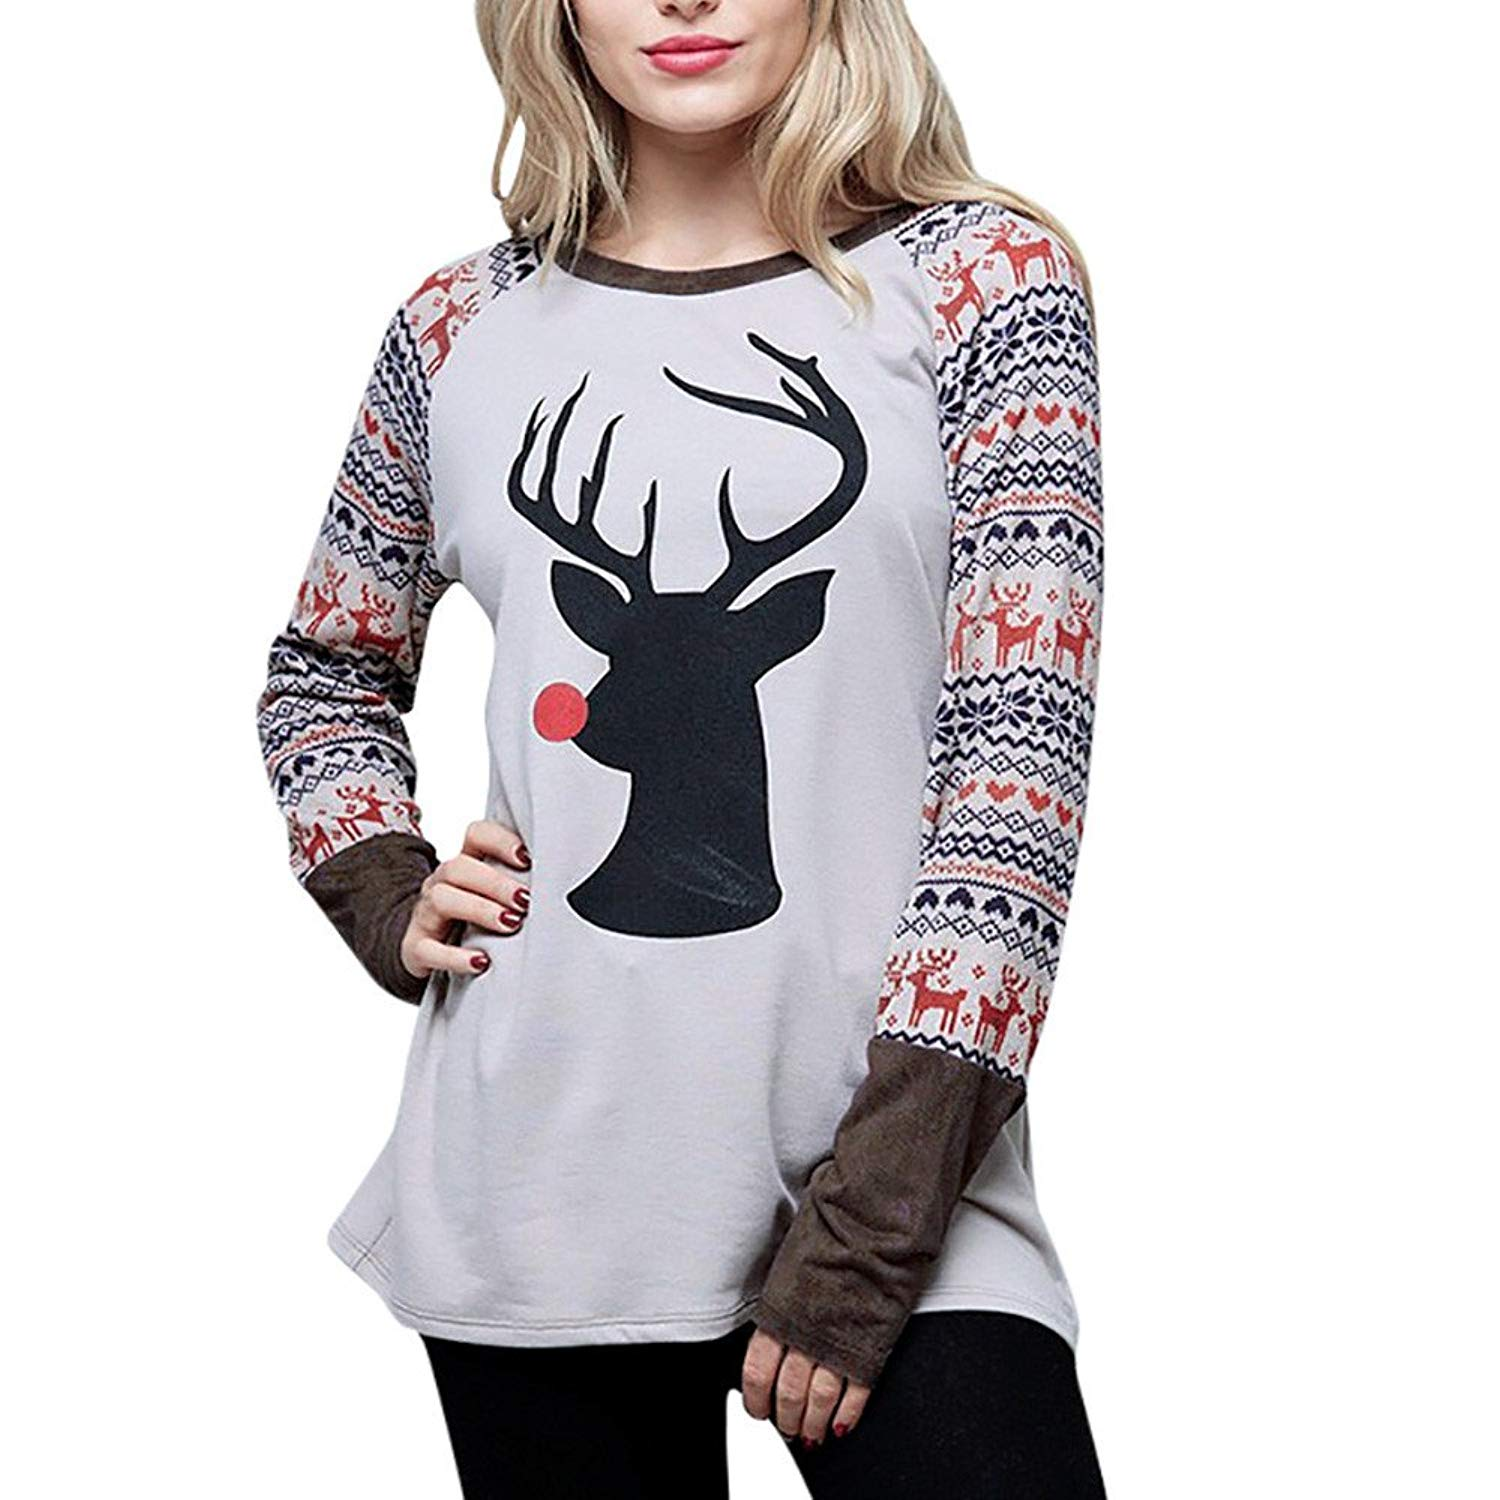 Elk Print Blouse,Han Shi Women Christmas Patchwork Crewneck Long Sleeve Loose Shirt Tops